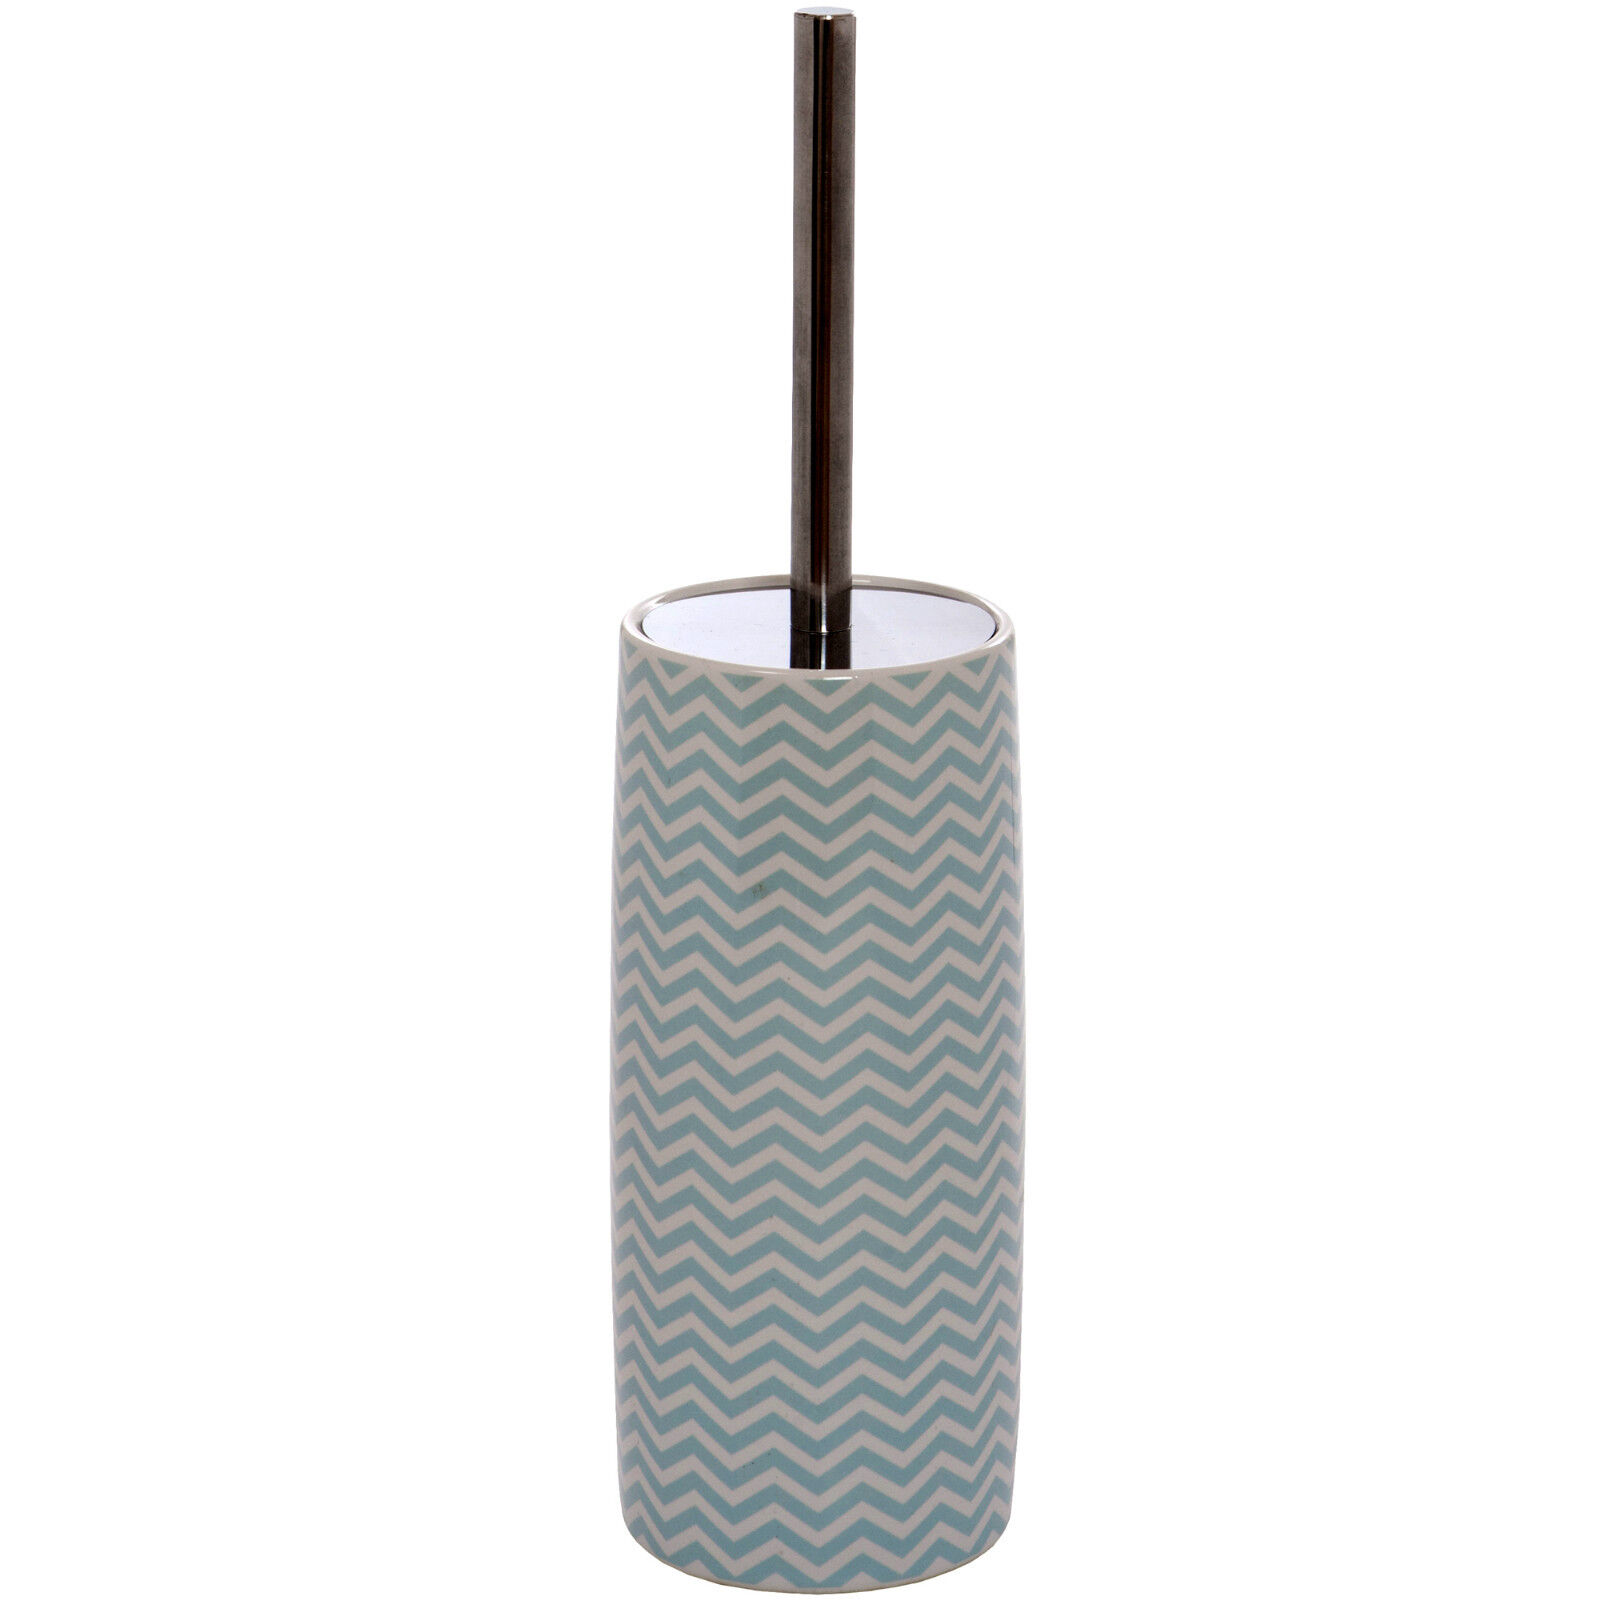 Ceramic Toilet Brush Holder Ceramic Toilet Brush And Holder Set White Turquoise Chrome